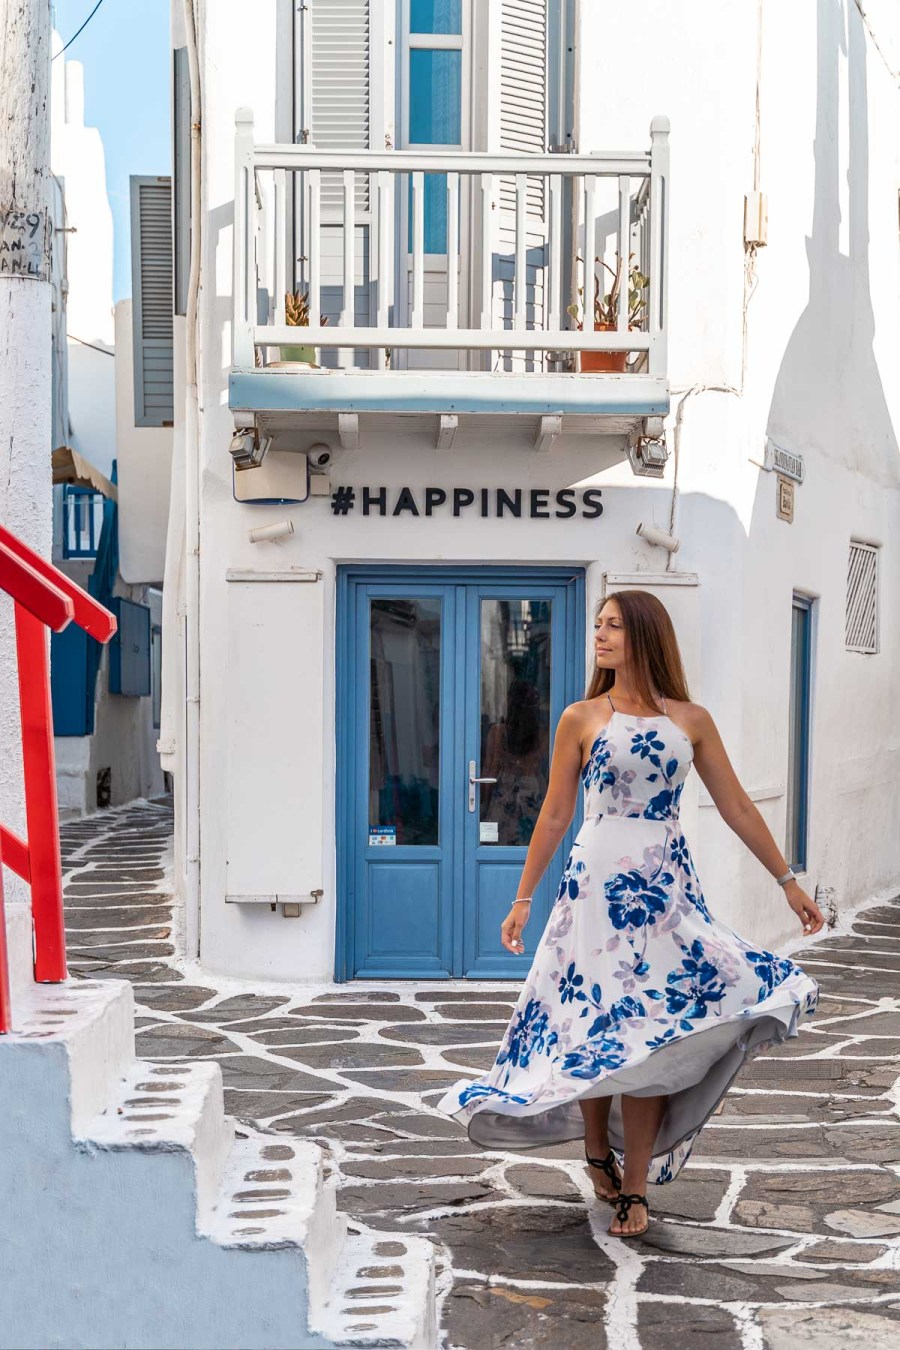 Girl in a blue floral dress twirling in front of the #happiness store which is one of the most instagrammable places in Mykonos